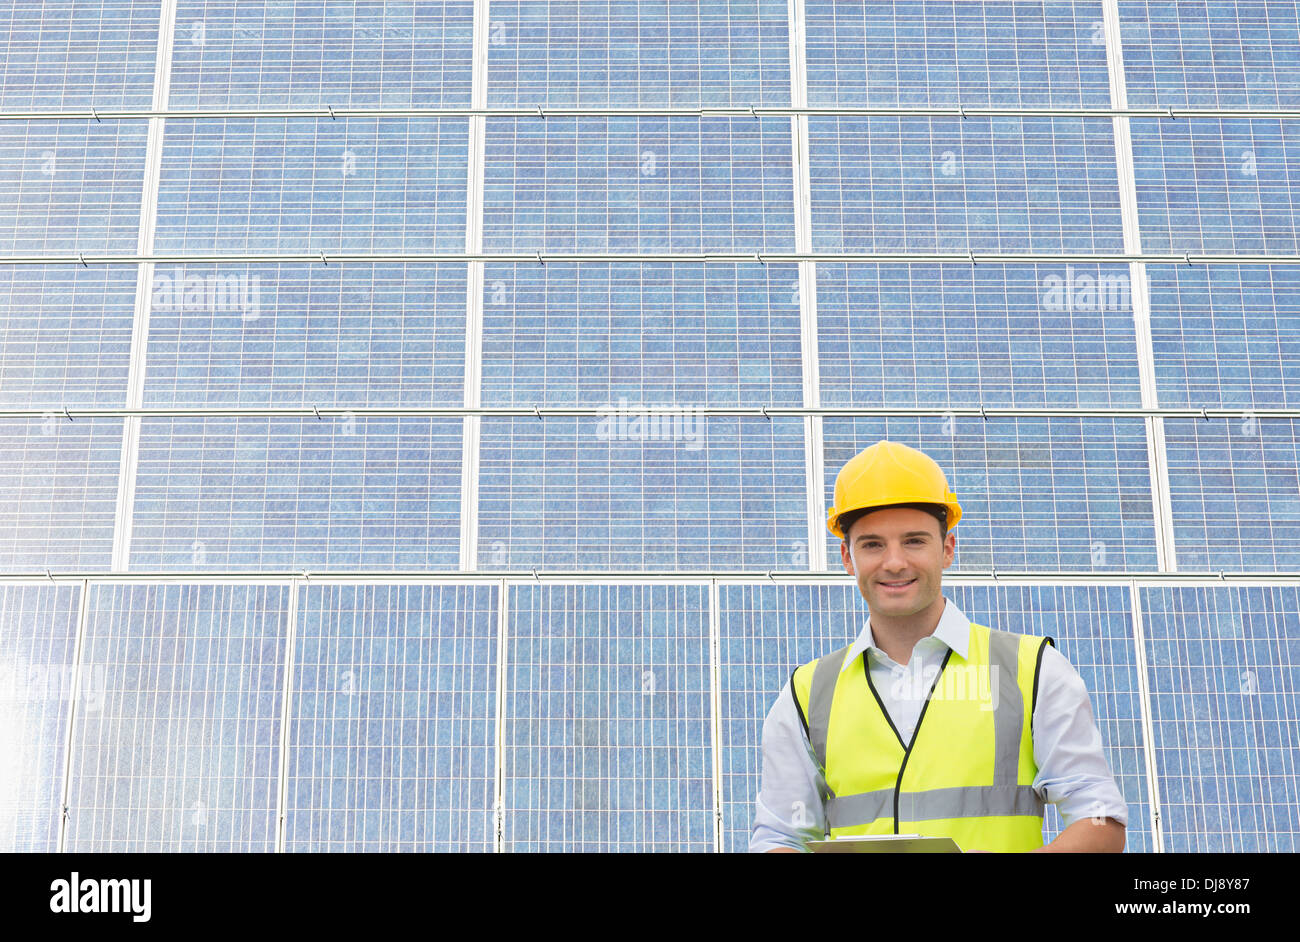 Worker standing under shade by wind turbine - Stock Image